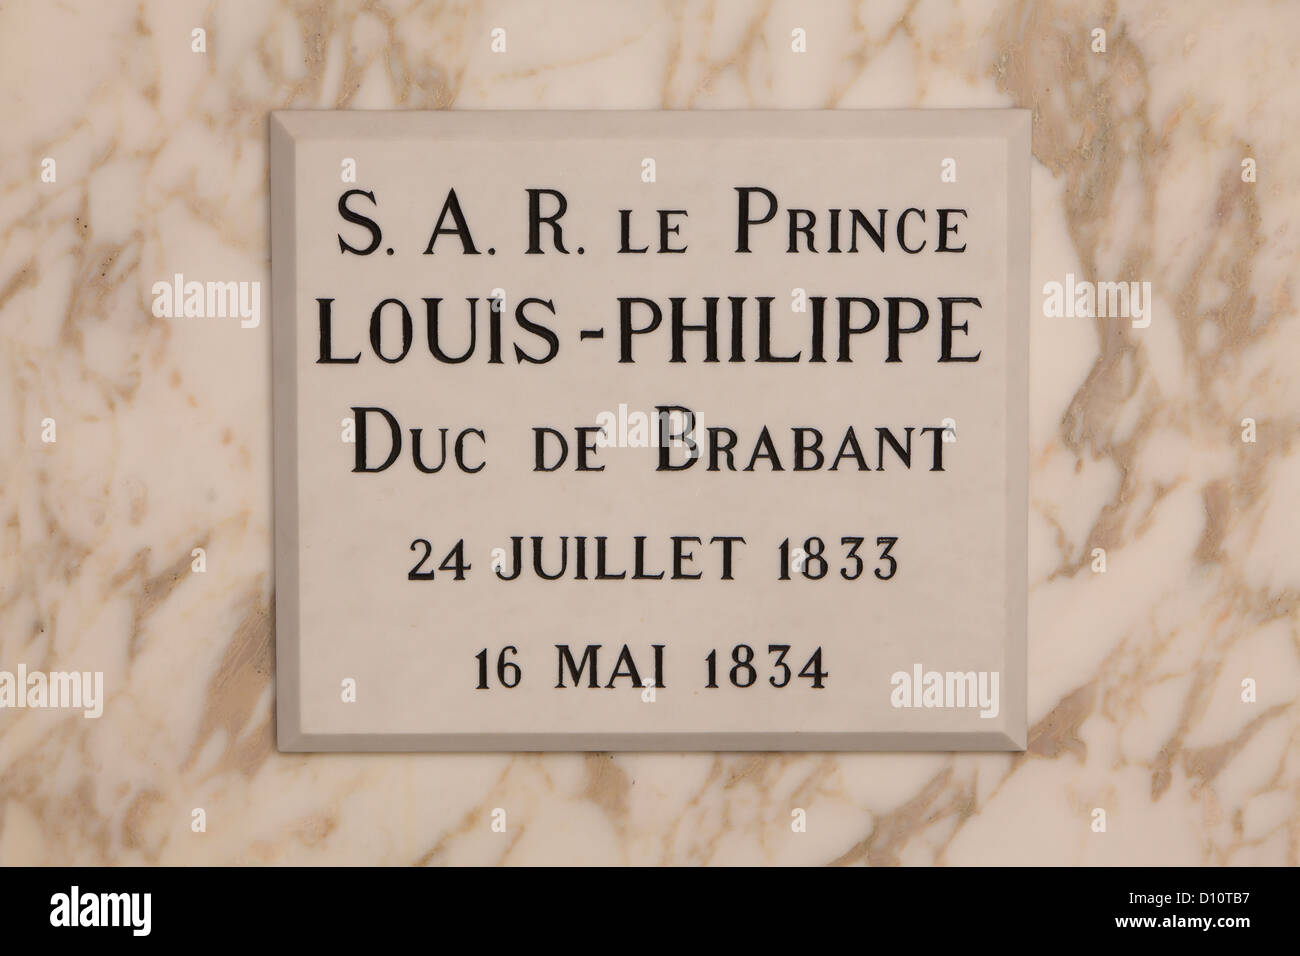 Tomb of Louis-Philippe, Crown Prince of Belgium (1833-1834), at the Royal Crypt in Laeken, BelgiumStock Photo